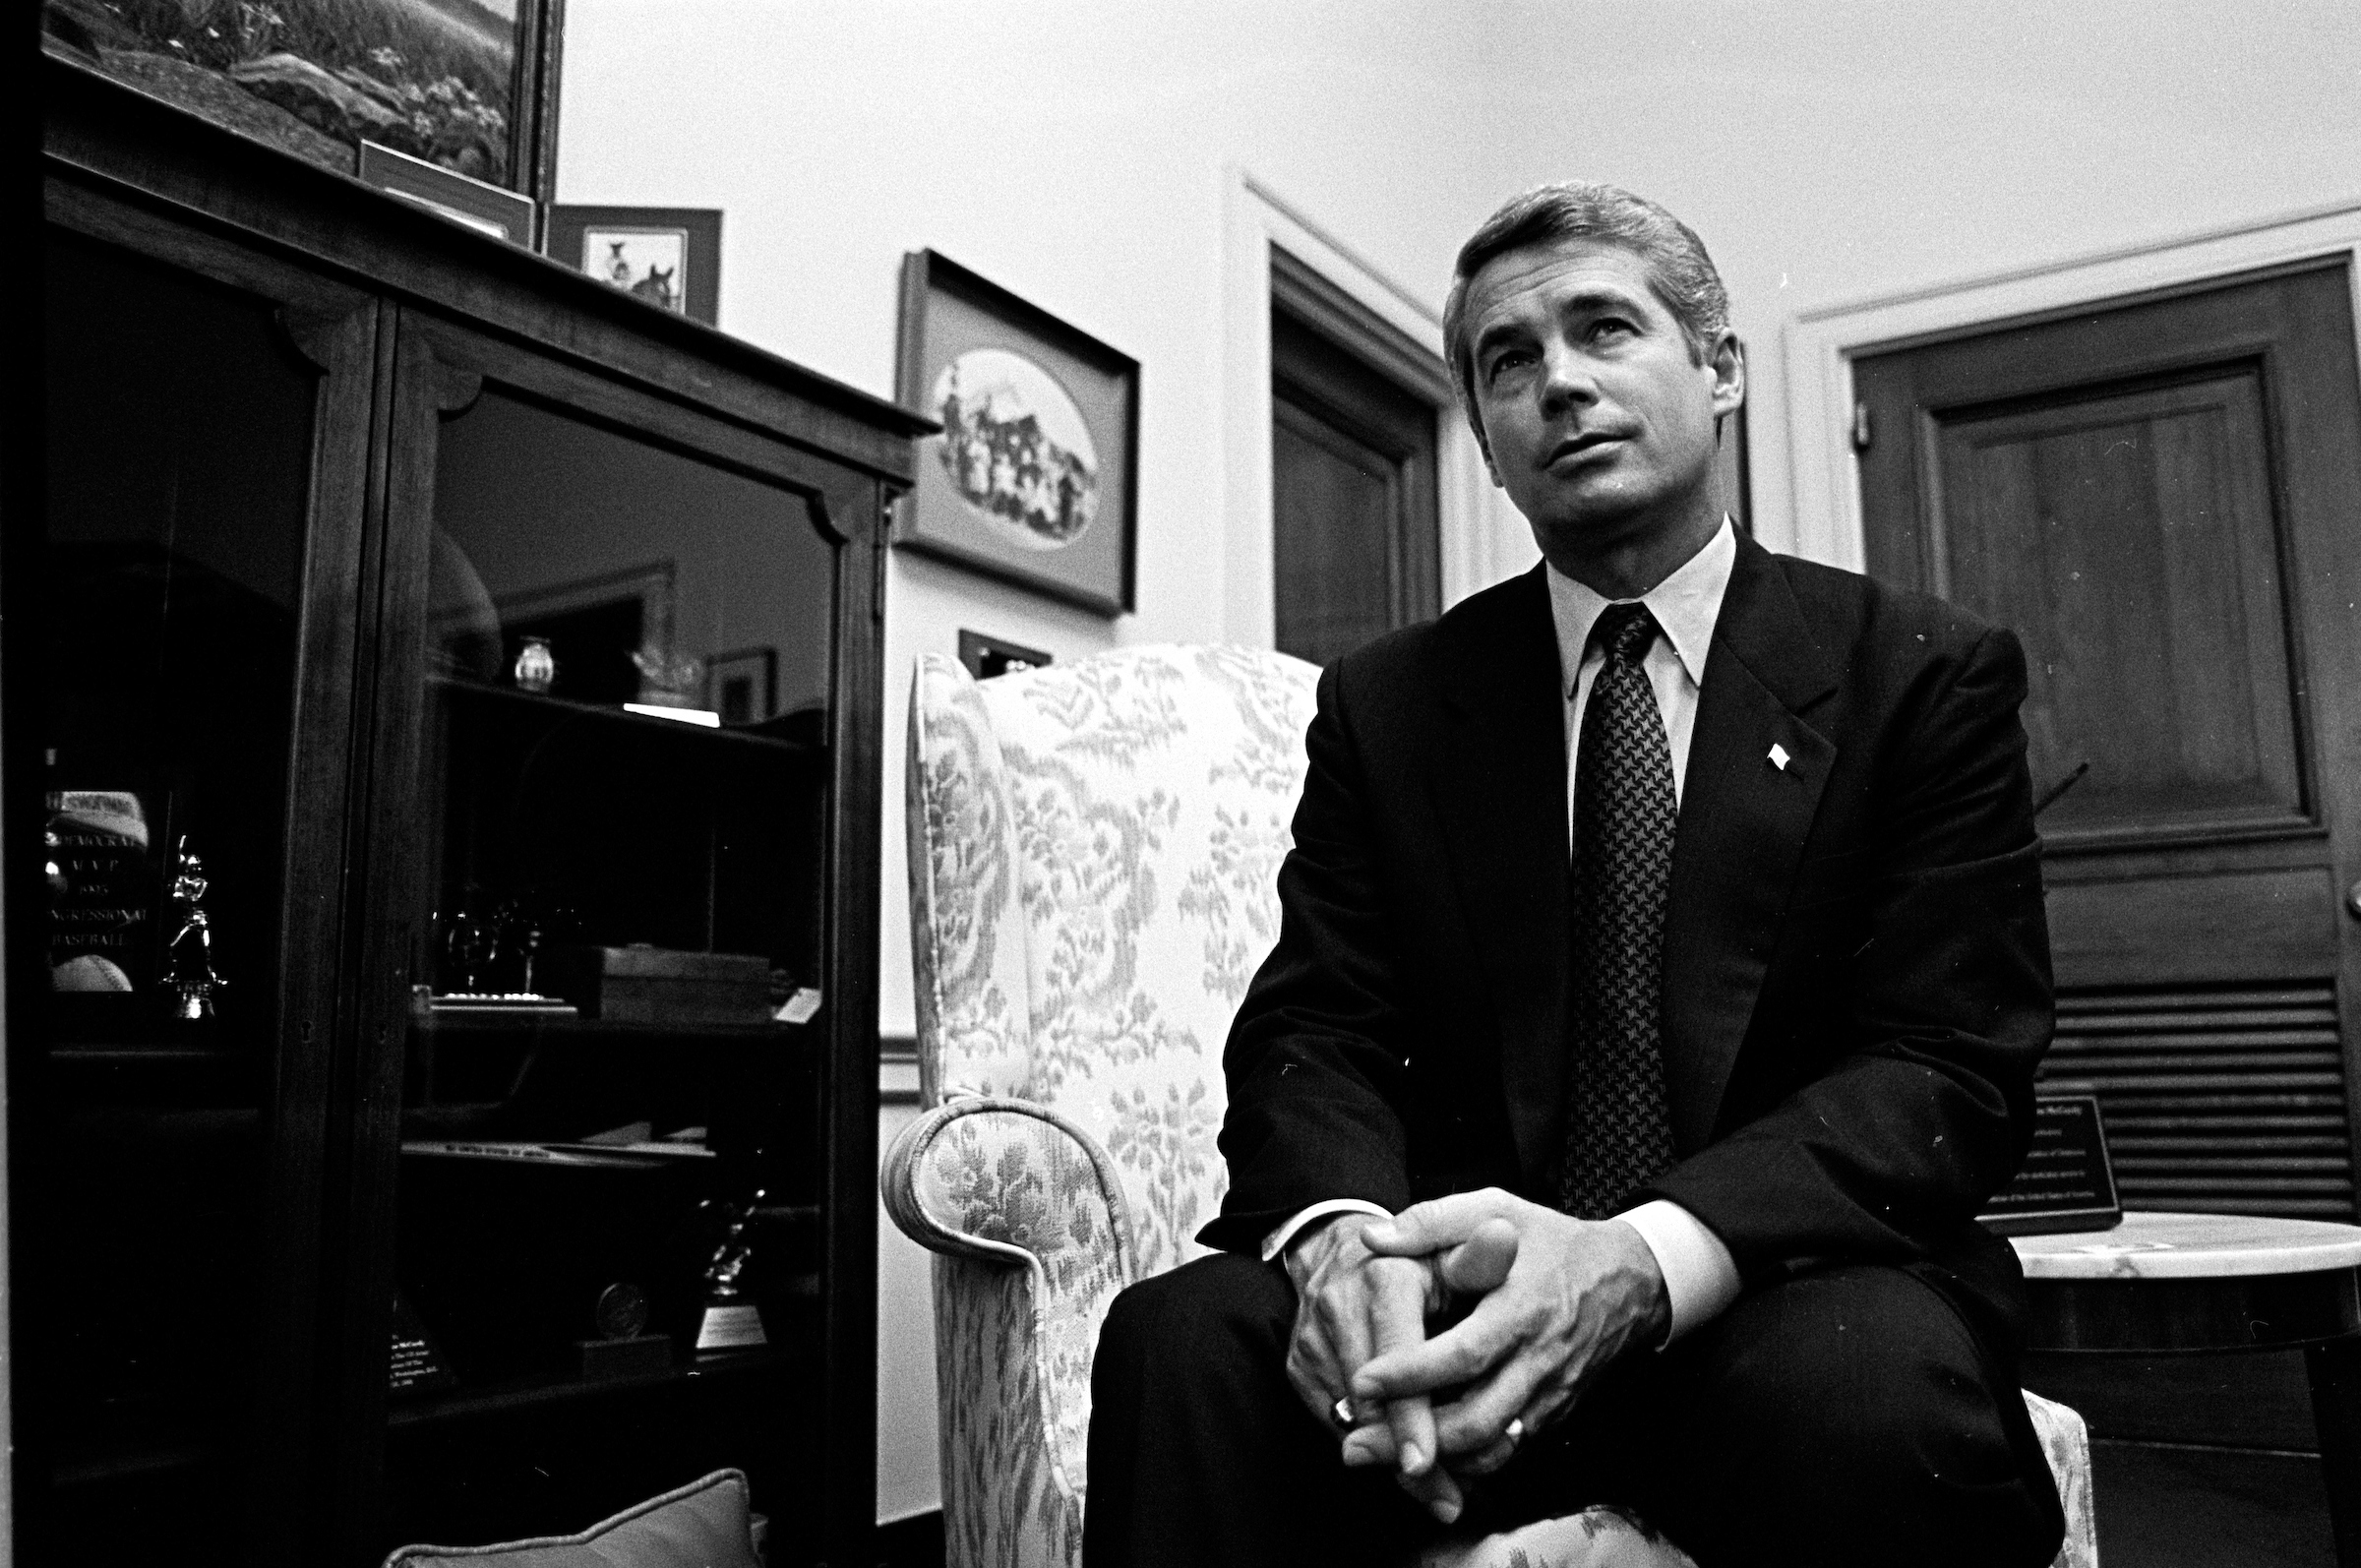 McCurdy in his office during his days in Congress. (CQ Roll Call file photo)